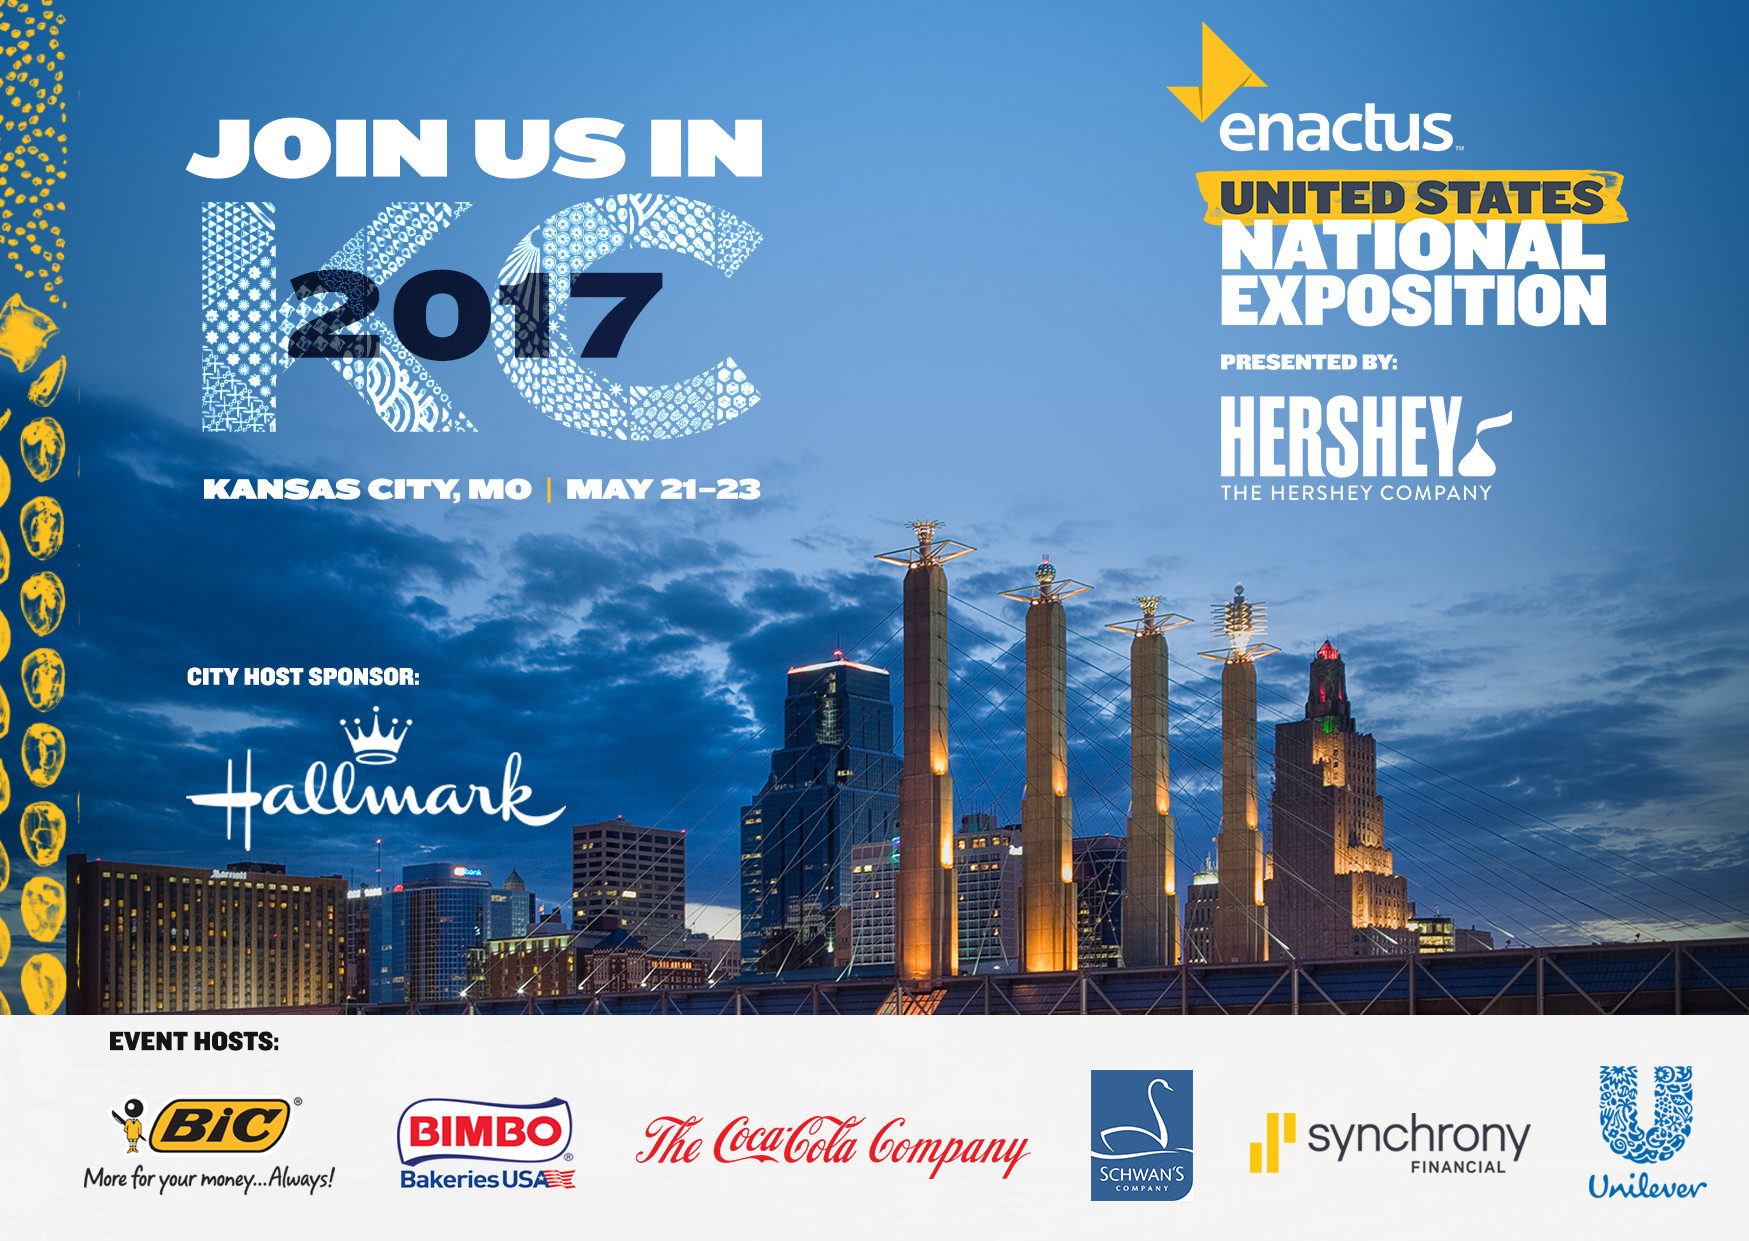 Enactus united states enactus united states national exposition 2017 for Kansas city home and garden show 2017